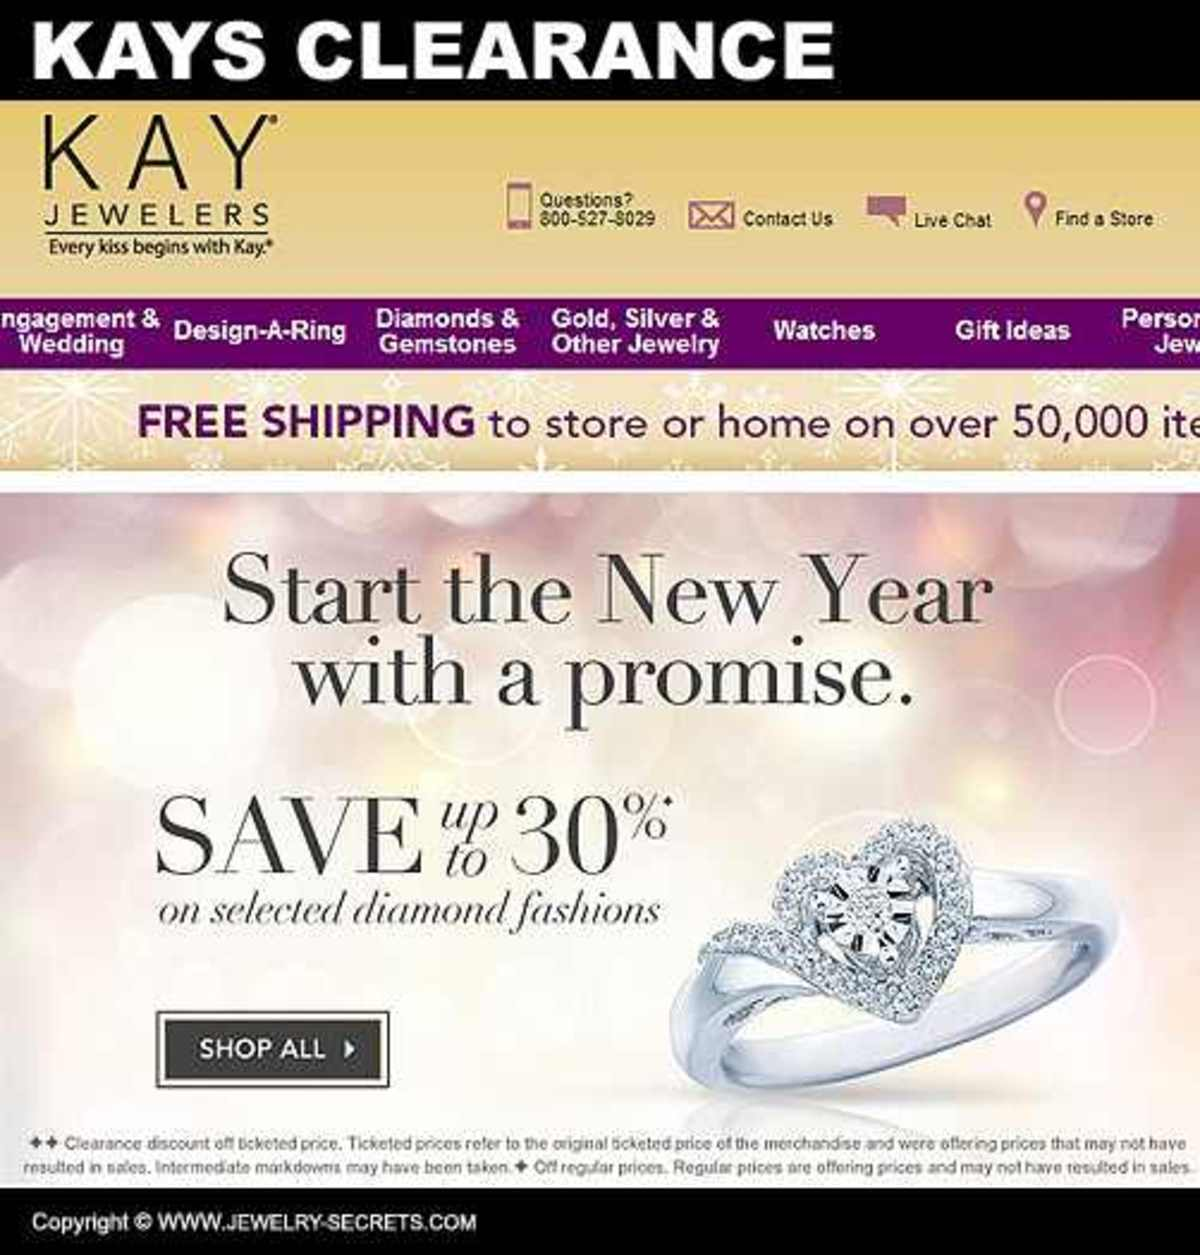 KAY JEWELERS (CLEARANCE)